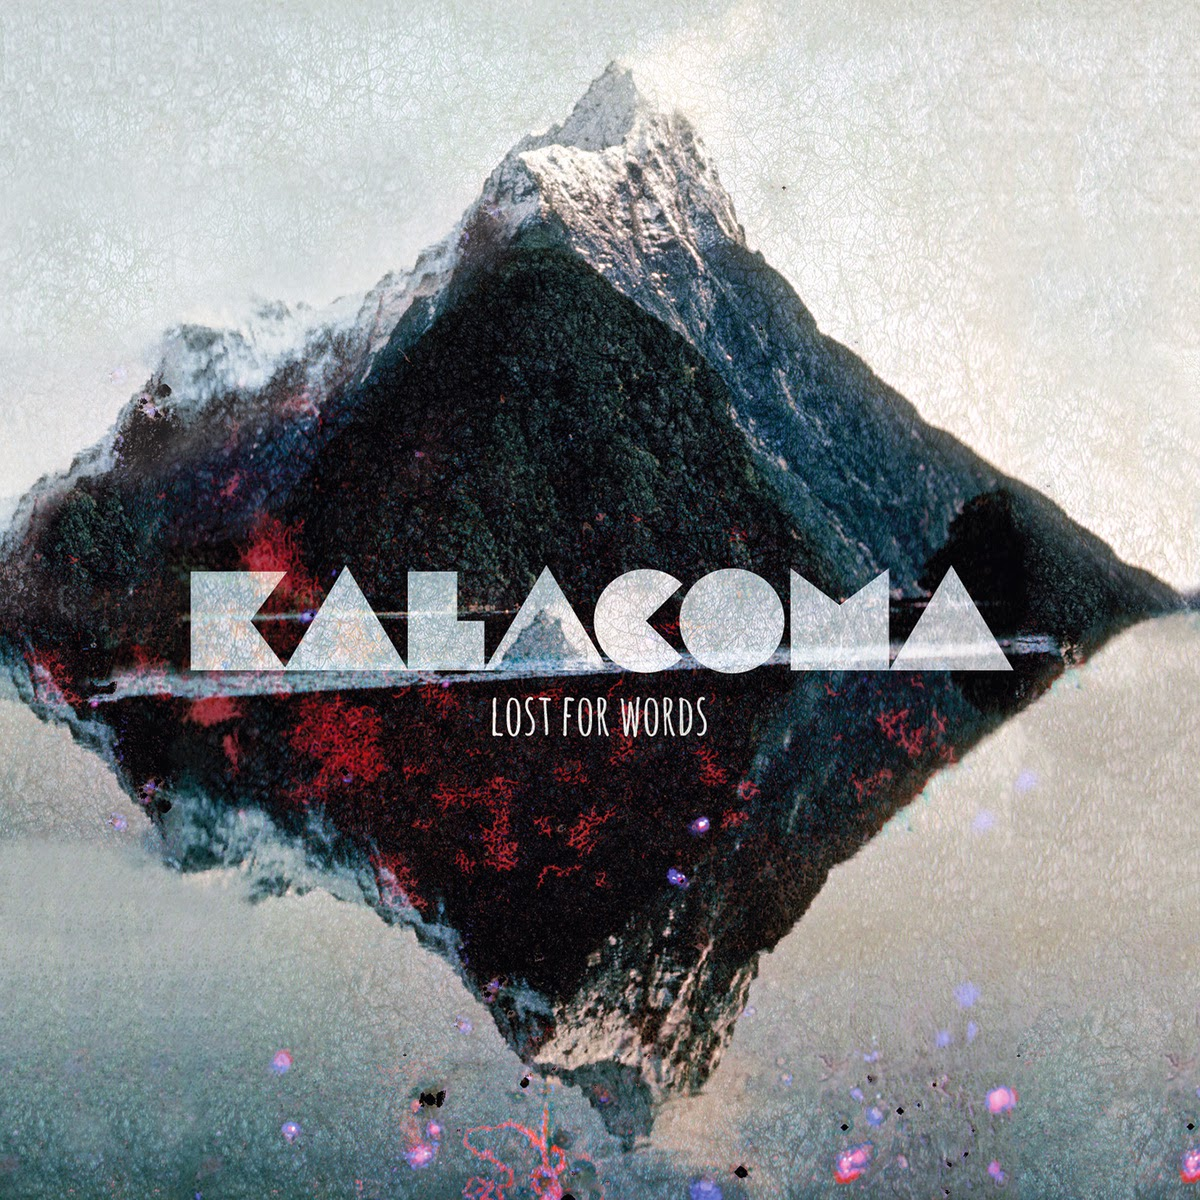 http://www.d4am.net/2014/10/kalacoma-lost-for-words.html